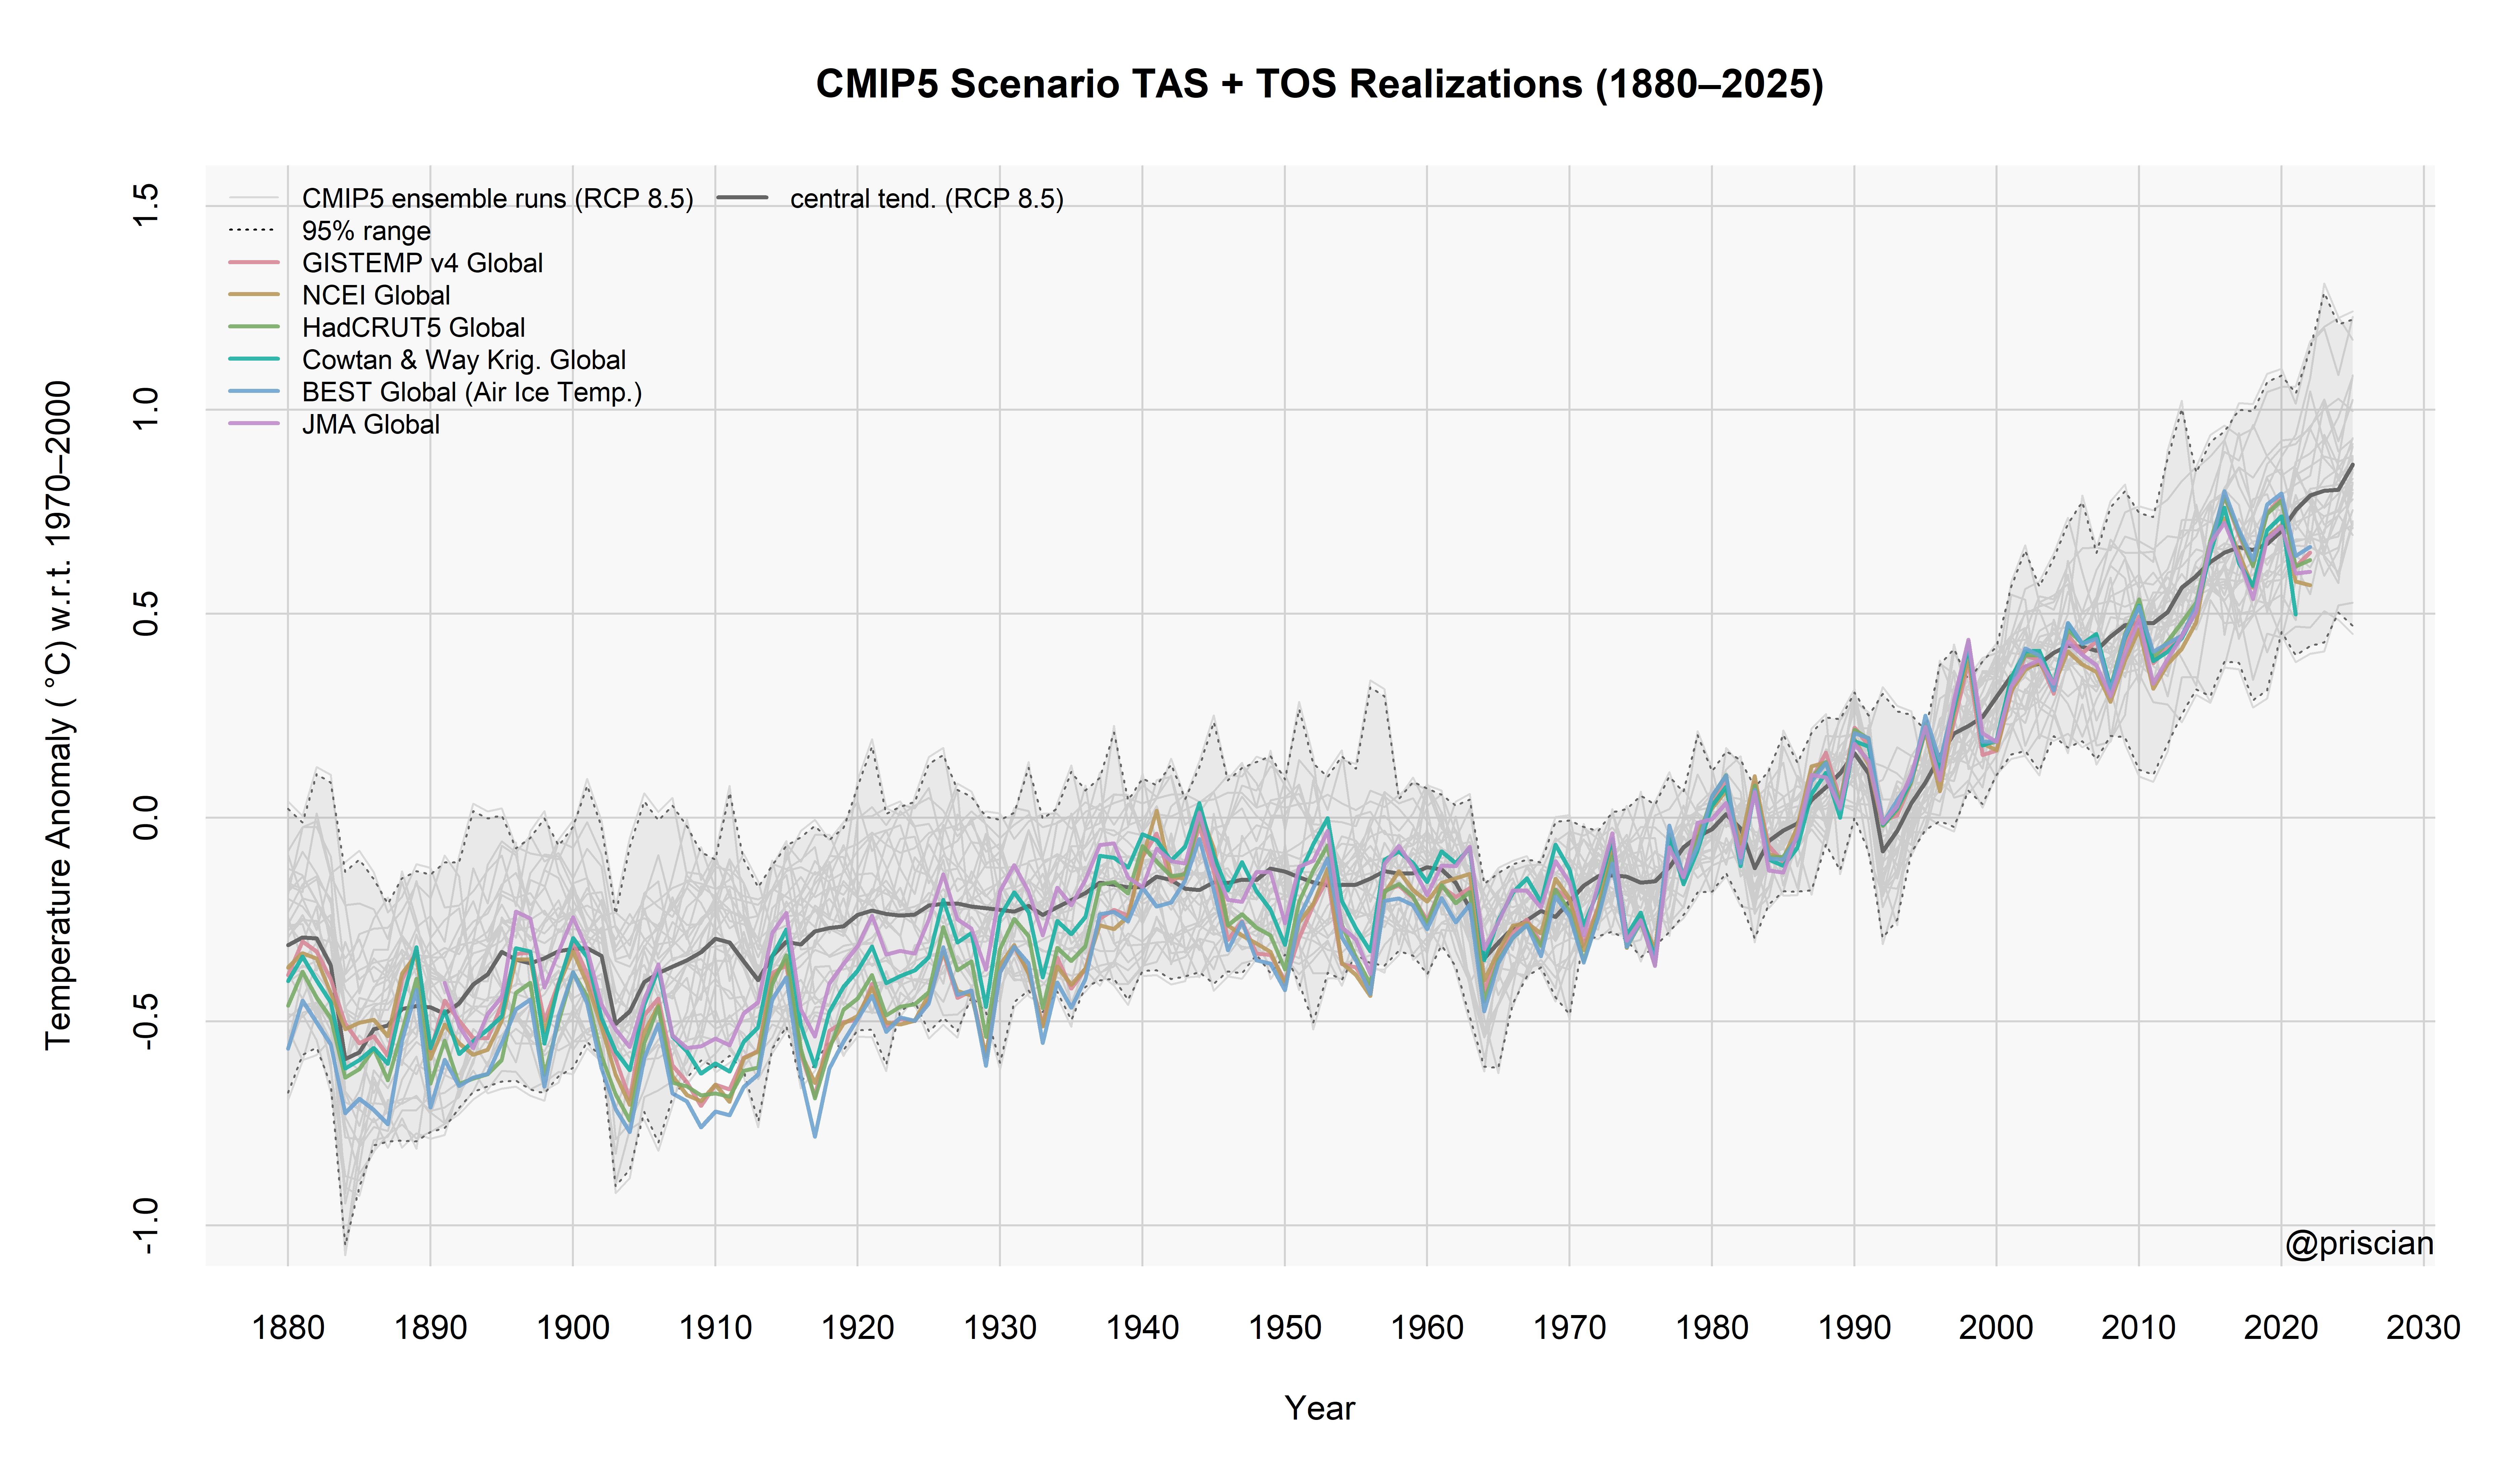 CMIP5 RCP 8.5 TAS + TOS scenario realizations compared to the major land+SST series.